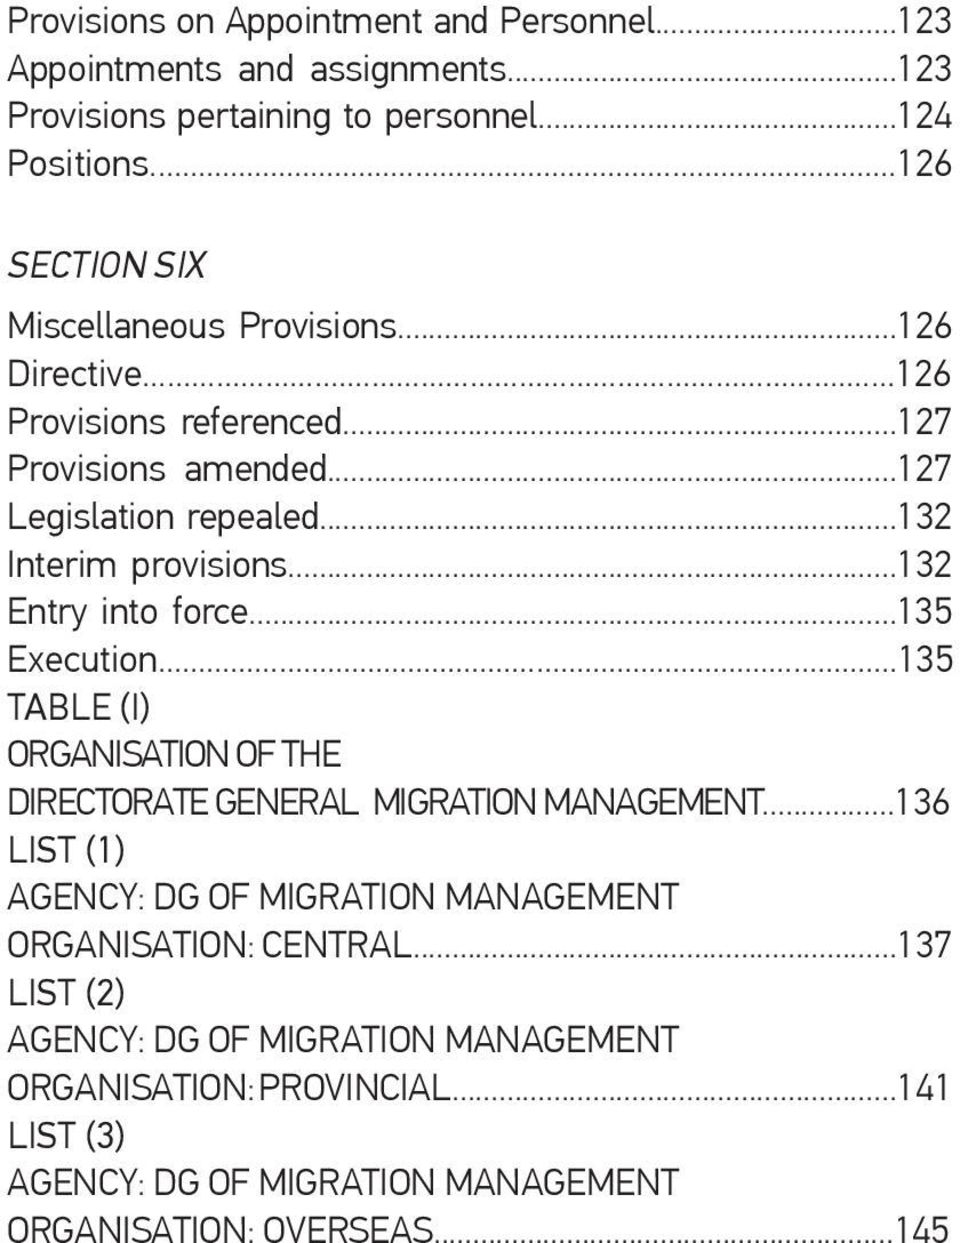 ..132 Interim provisions...132 Entry into force...135 Execution...135 TABLE (I) ORGANISATION OF THE DIRECTORATE GENERAL MIGRATION MANAGEMENT.